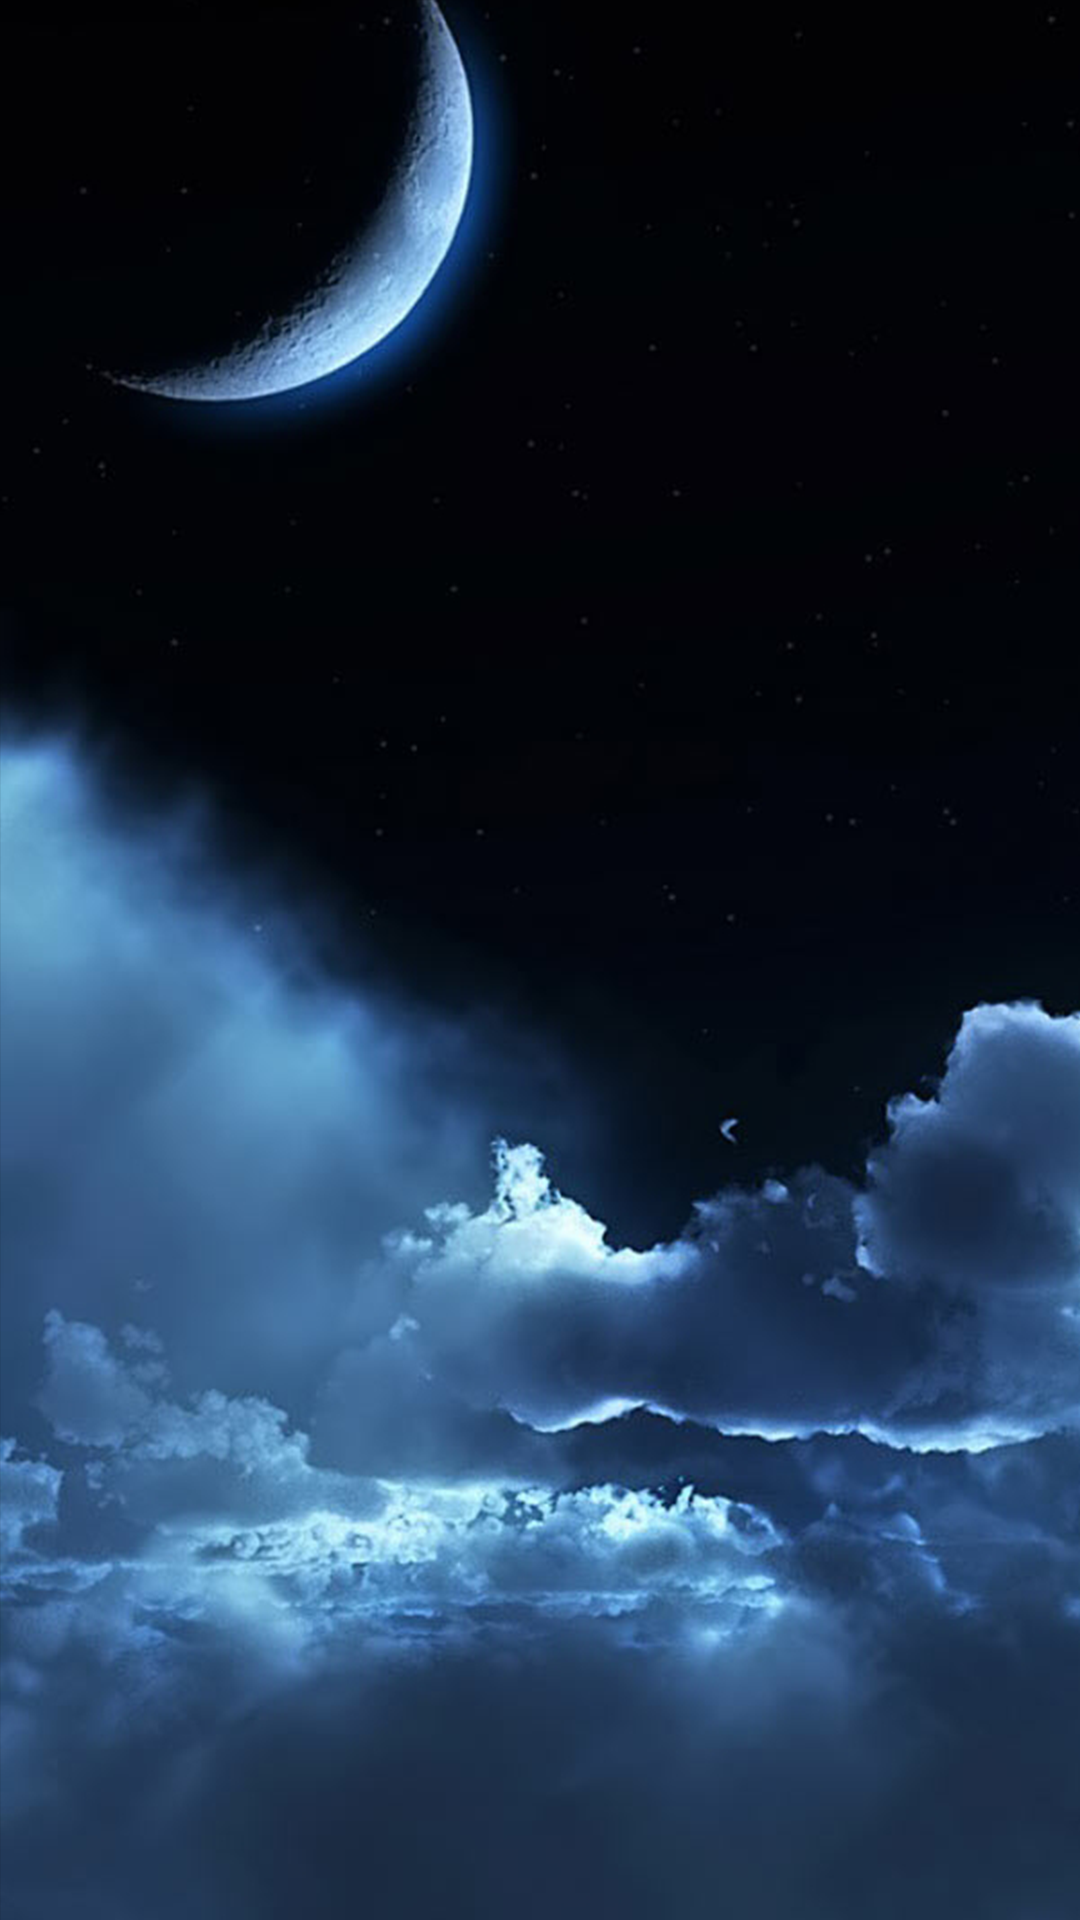 Sky Wallpapers: Ultra HD Night Sky Wallpaper For Your Mobile Phone ...0189